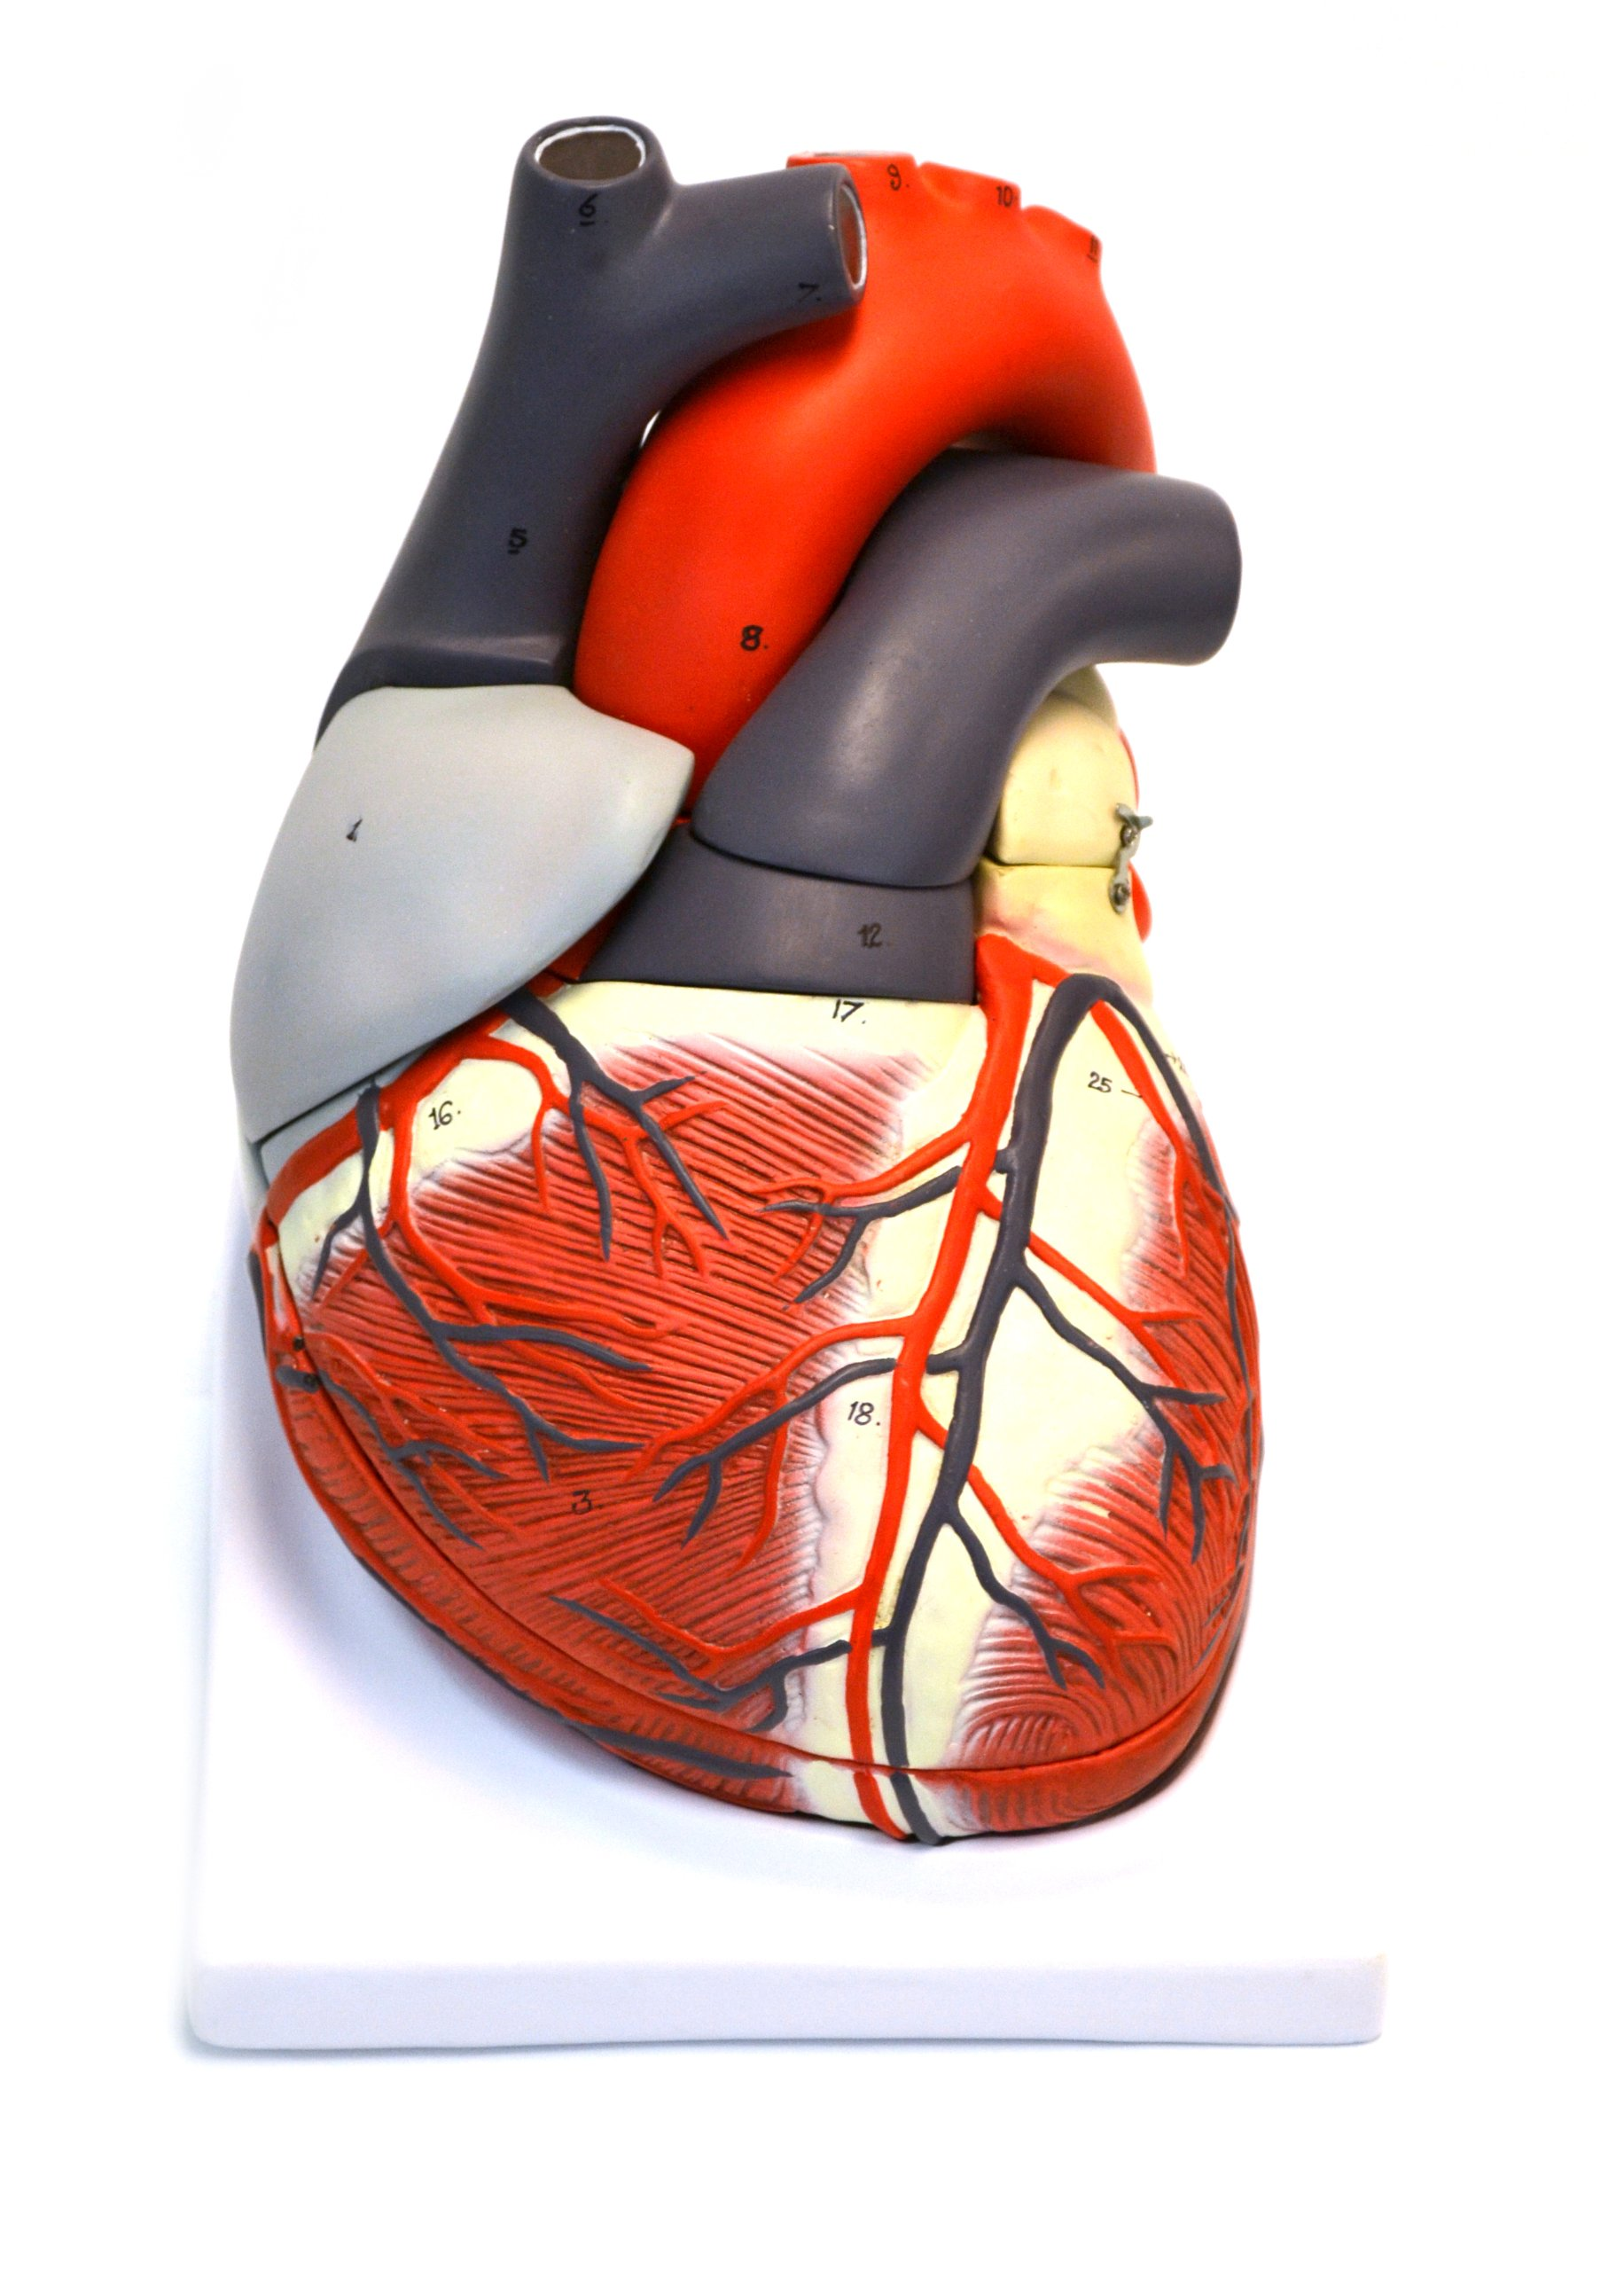 Eisco AM75AS Model, Human, Heart, 7 Part, Removable, Dissectable by EISCO (Image #1)